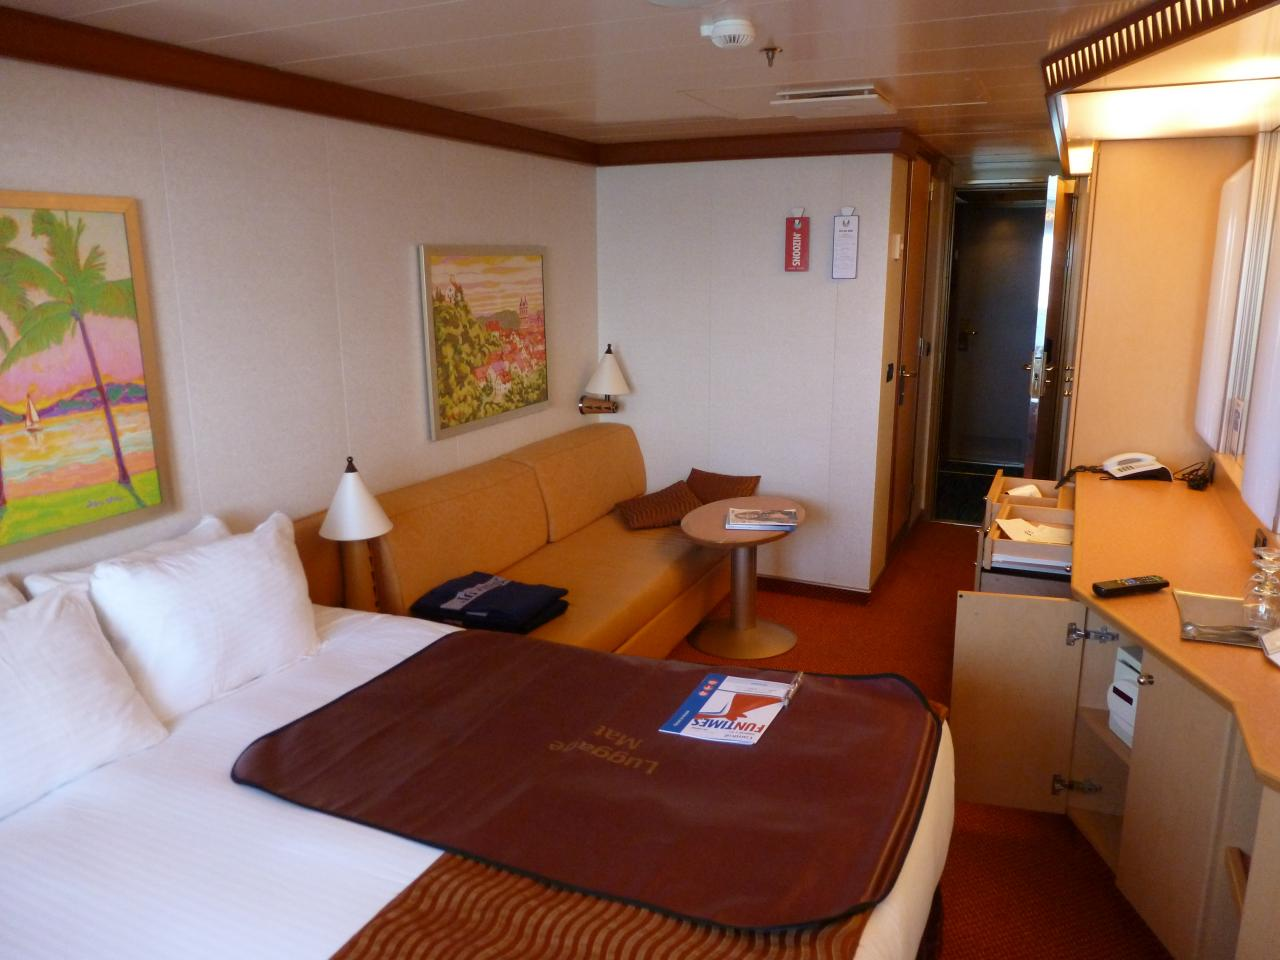 Carnival dream cruise review for cabin 6337 for Dream cabins